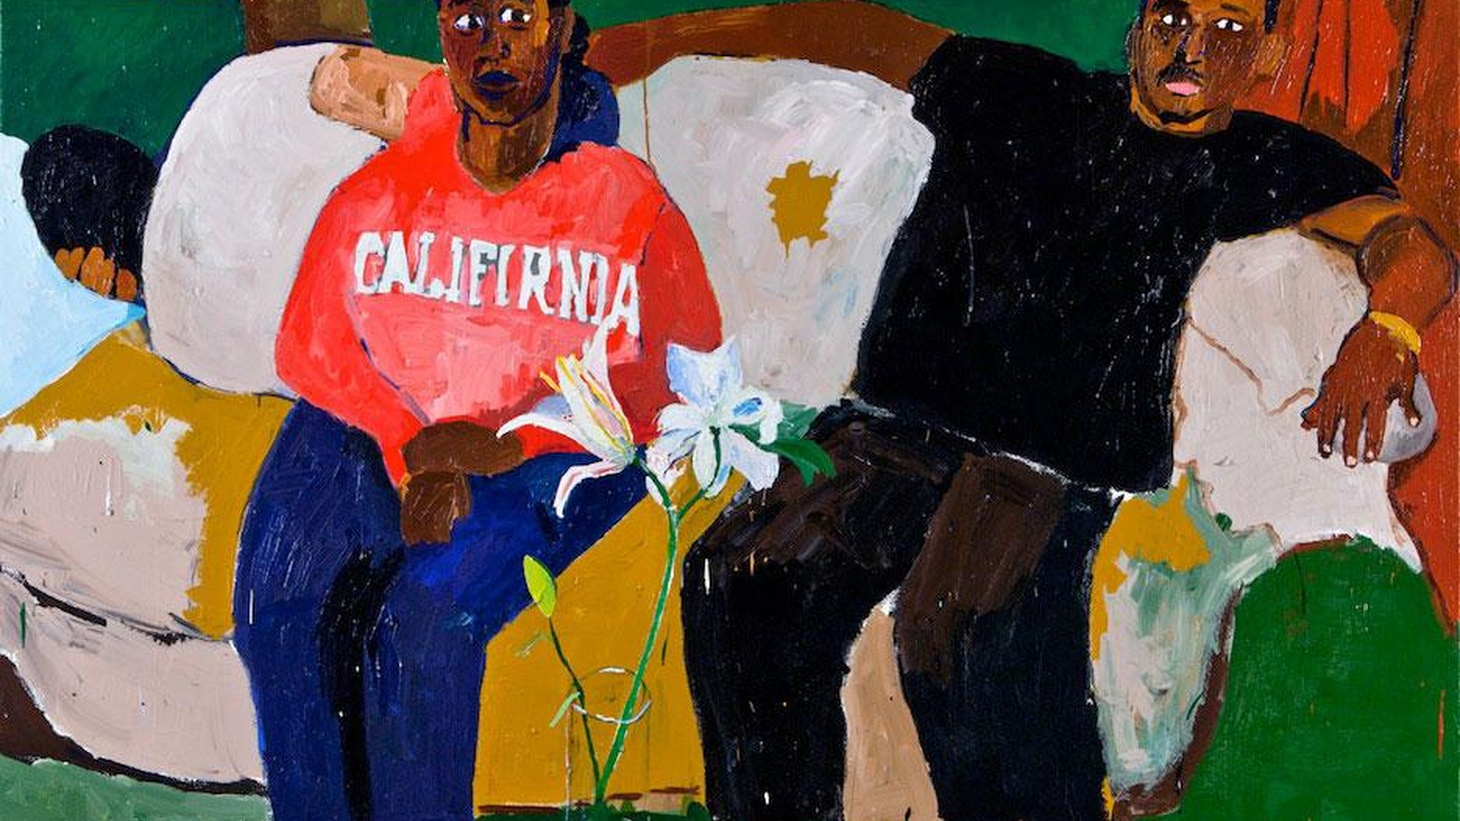 If you had a chance to see paintings by Henry Taylor a couple of years ago at the Santa Monica Museum of Art...you definitely would remember the overwhelming impact of the gritty street scenes with their downtown denizens, captured by him so colorfully, so mercilessly but, ultimately, so lovingly on his large canvases...